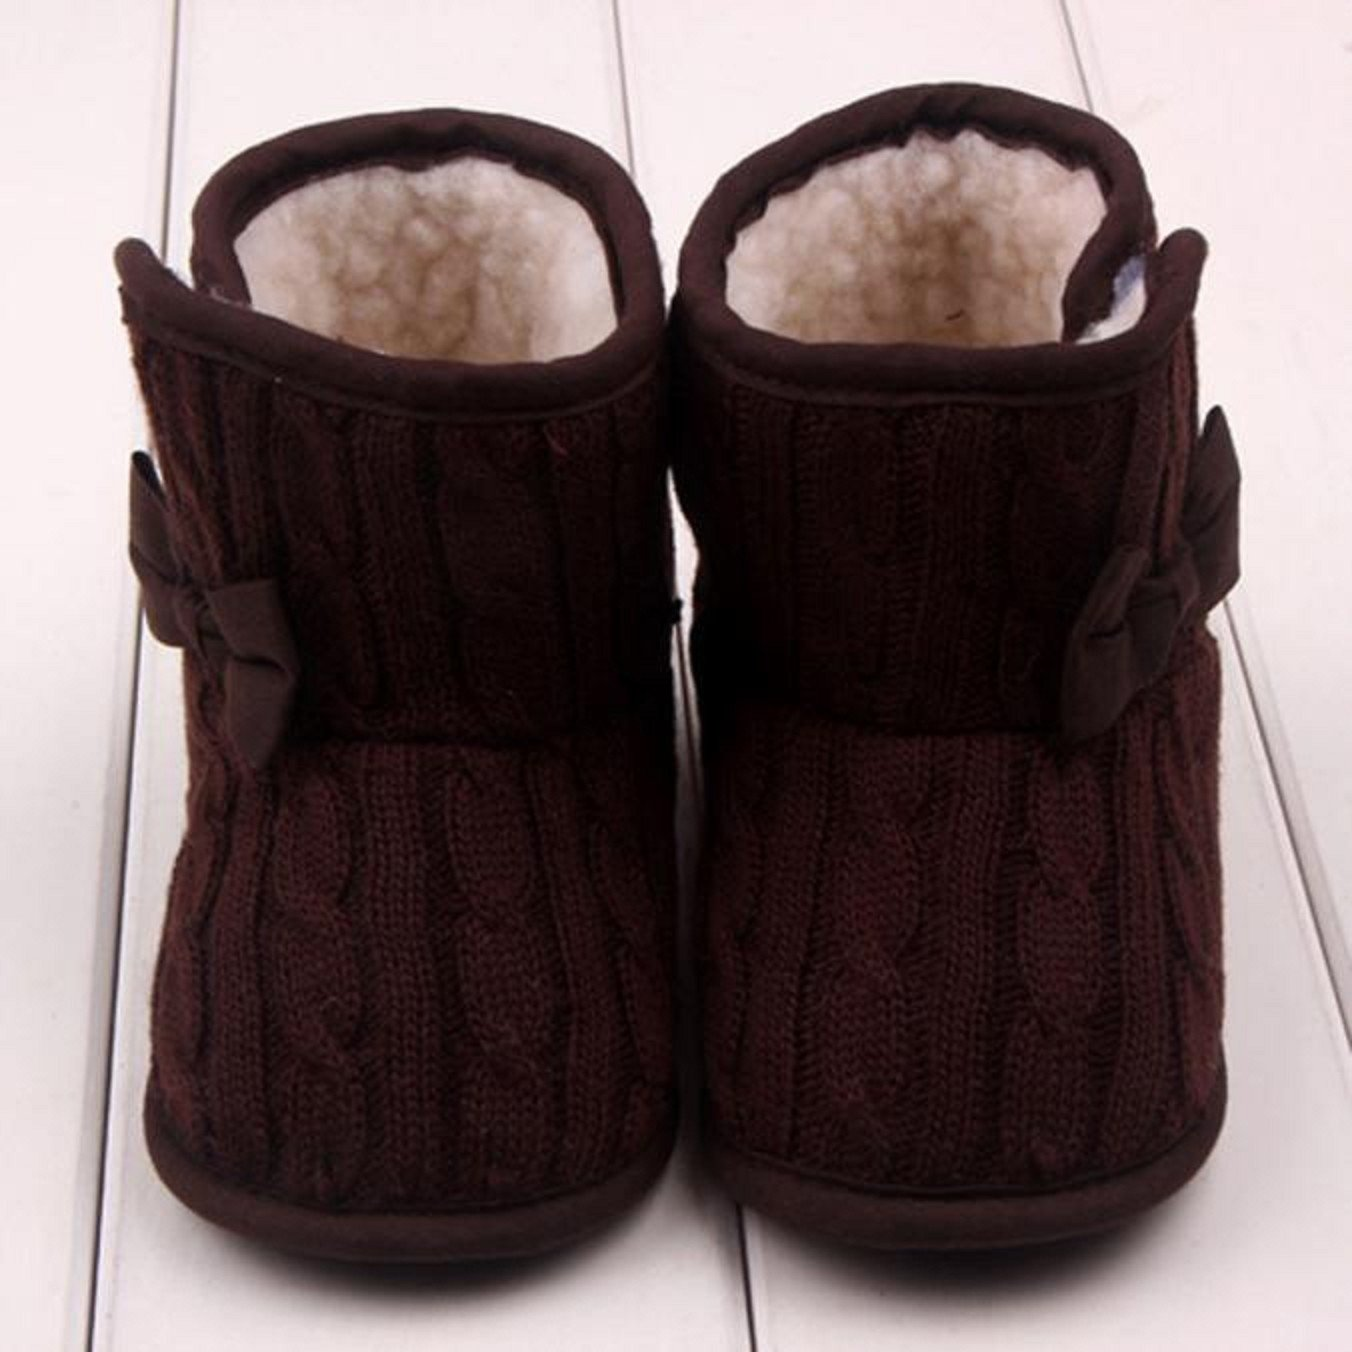 Car Electronics & Accessories 12, Coffee Speakers FAPIZI ❈ Baby Shoes ❈ Baby Bowknot Soft Sole Winter Warm Shoes